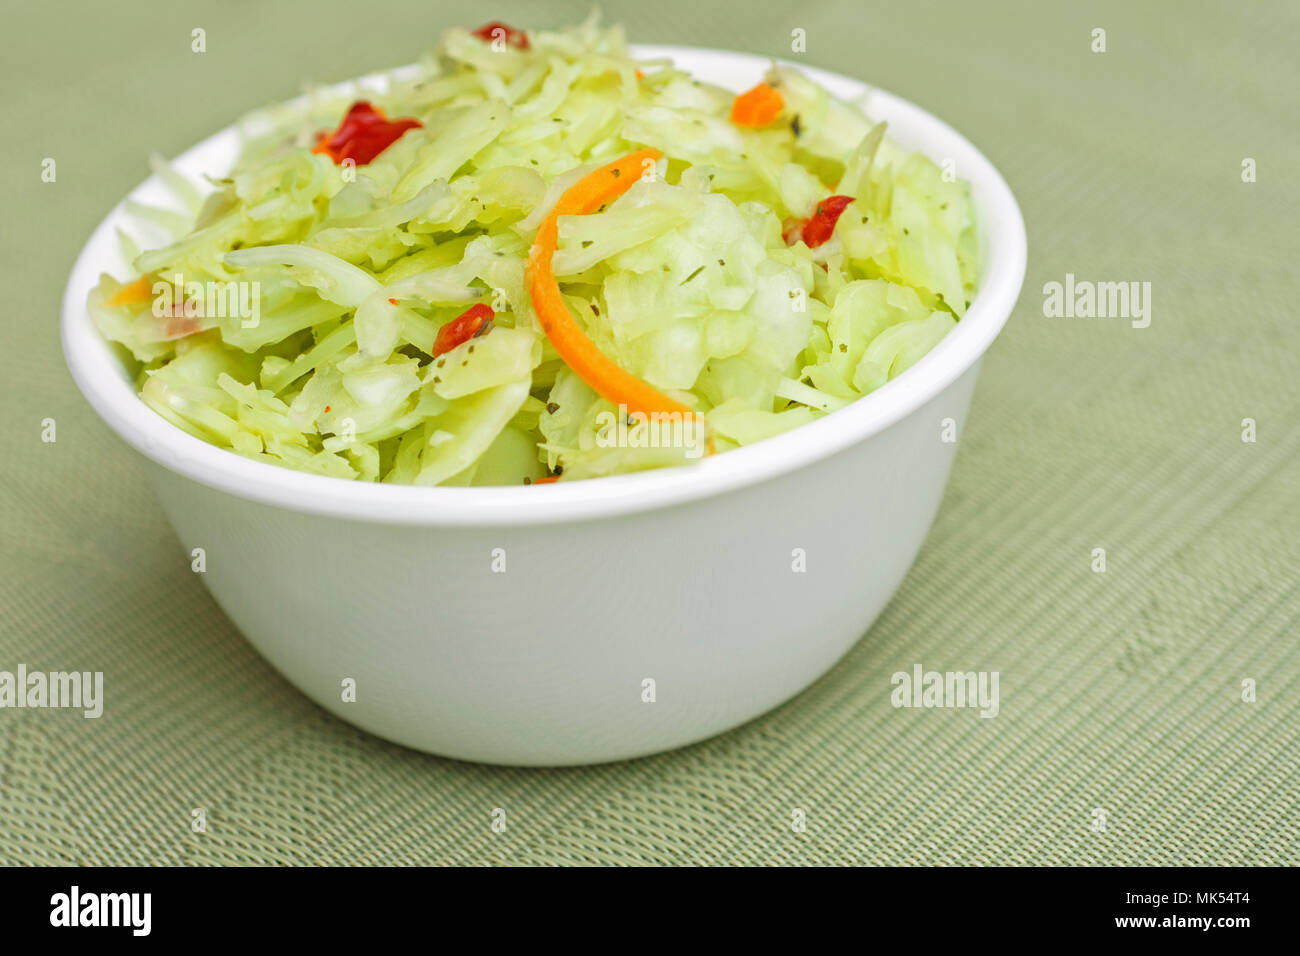 Coleslaw, white bowl with Coleslaw Salad - Stock Image